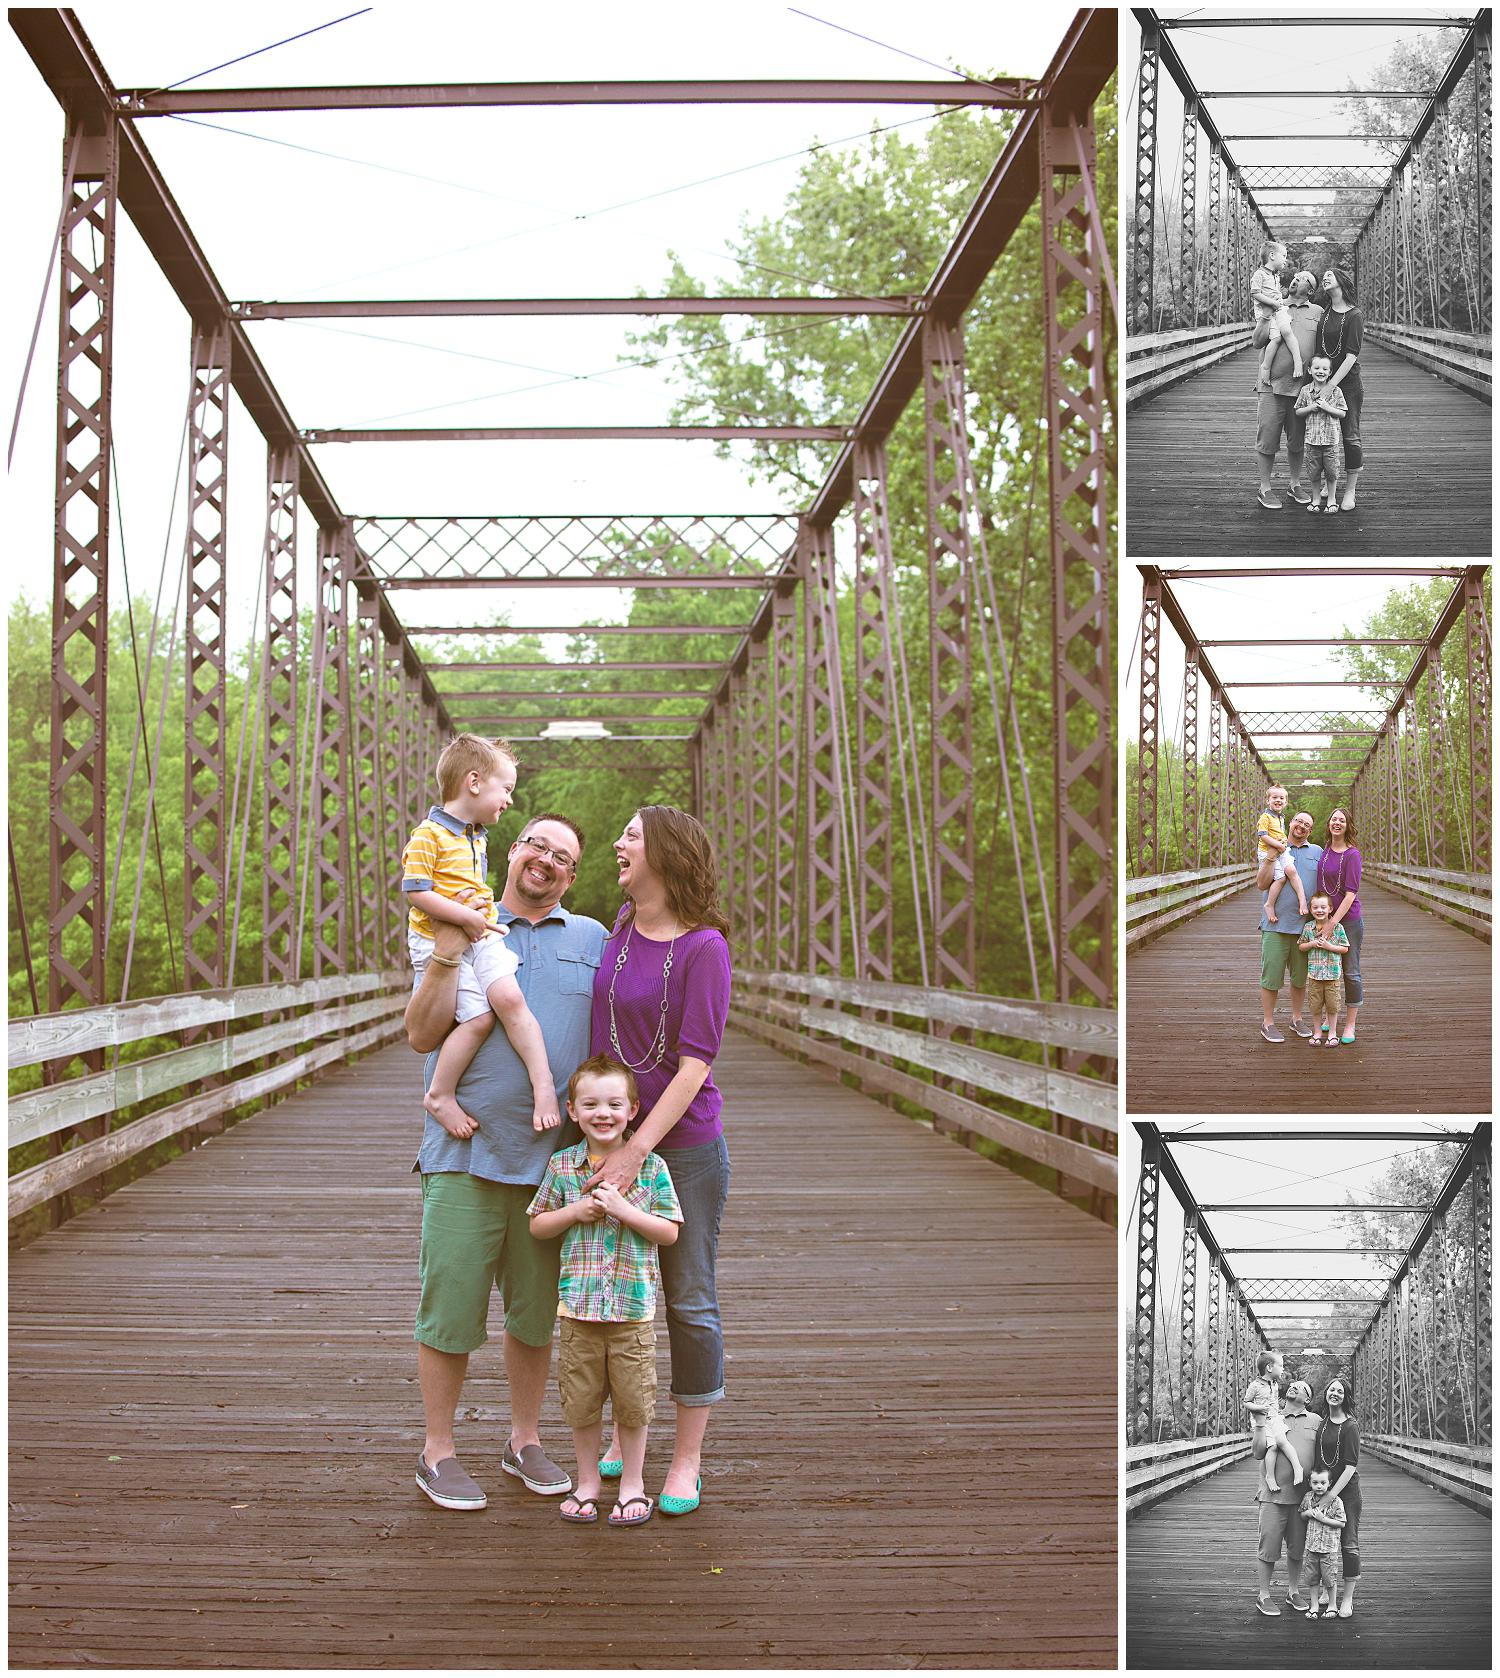 Dover, New Philadelphia OH child + family photographer | © Brandi Williamson Photography